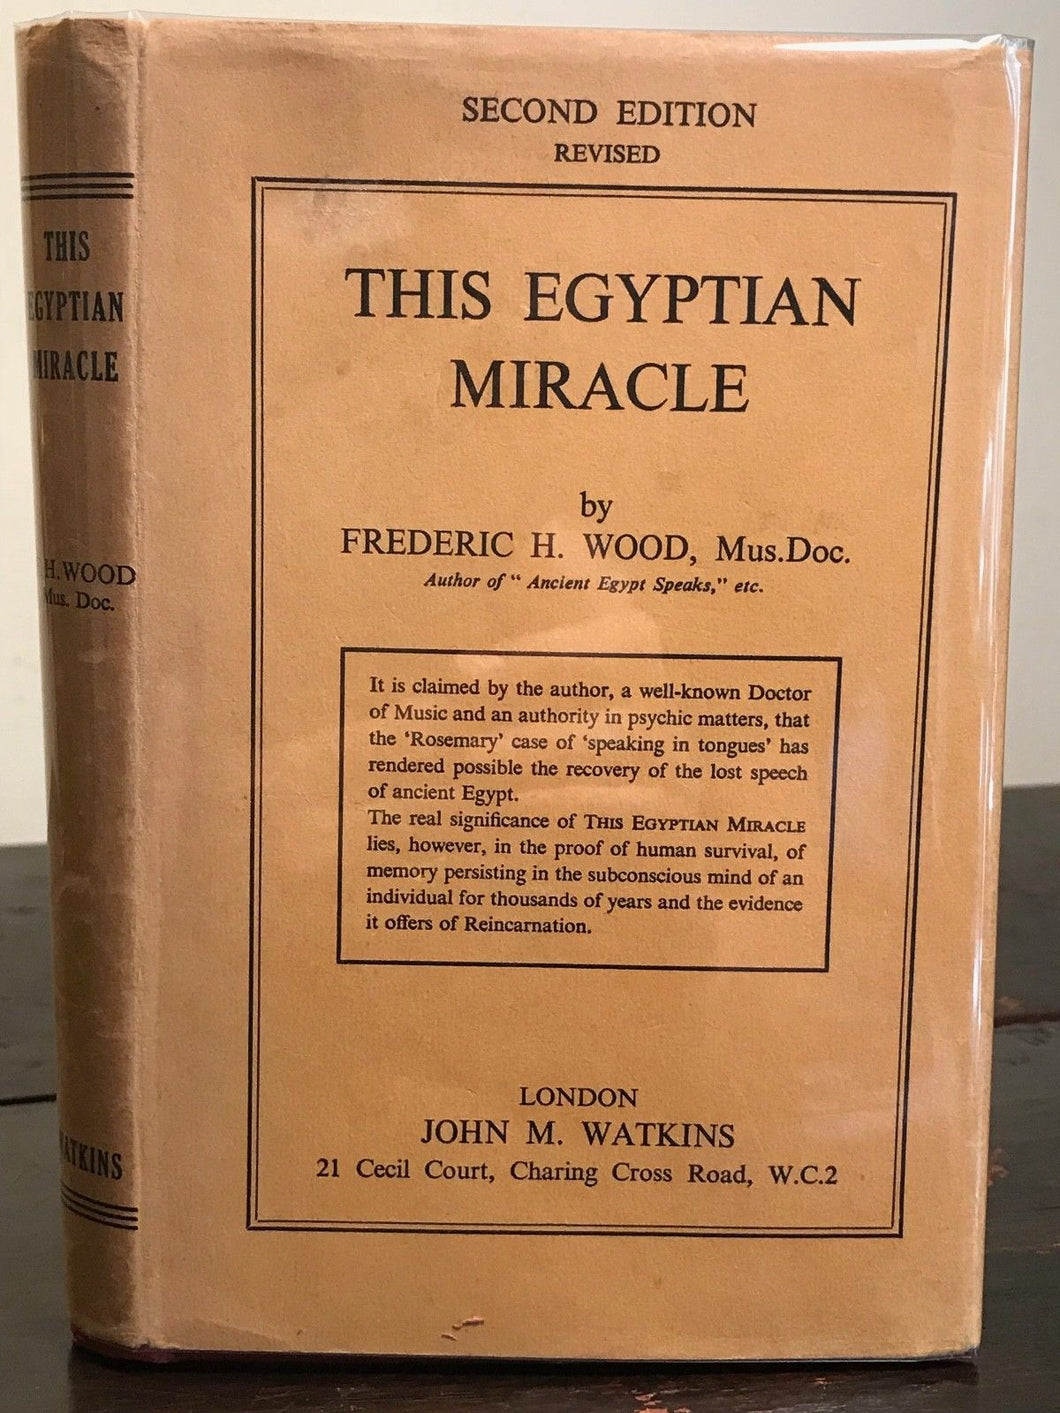 RESTORATION OF LOST SPEECH OF ANCIENT EGYPT BY PSYCHIC MEANS - WOOD, HC/DJ 1955